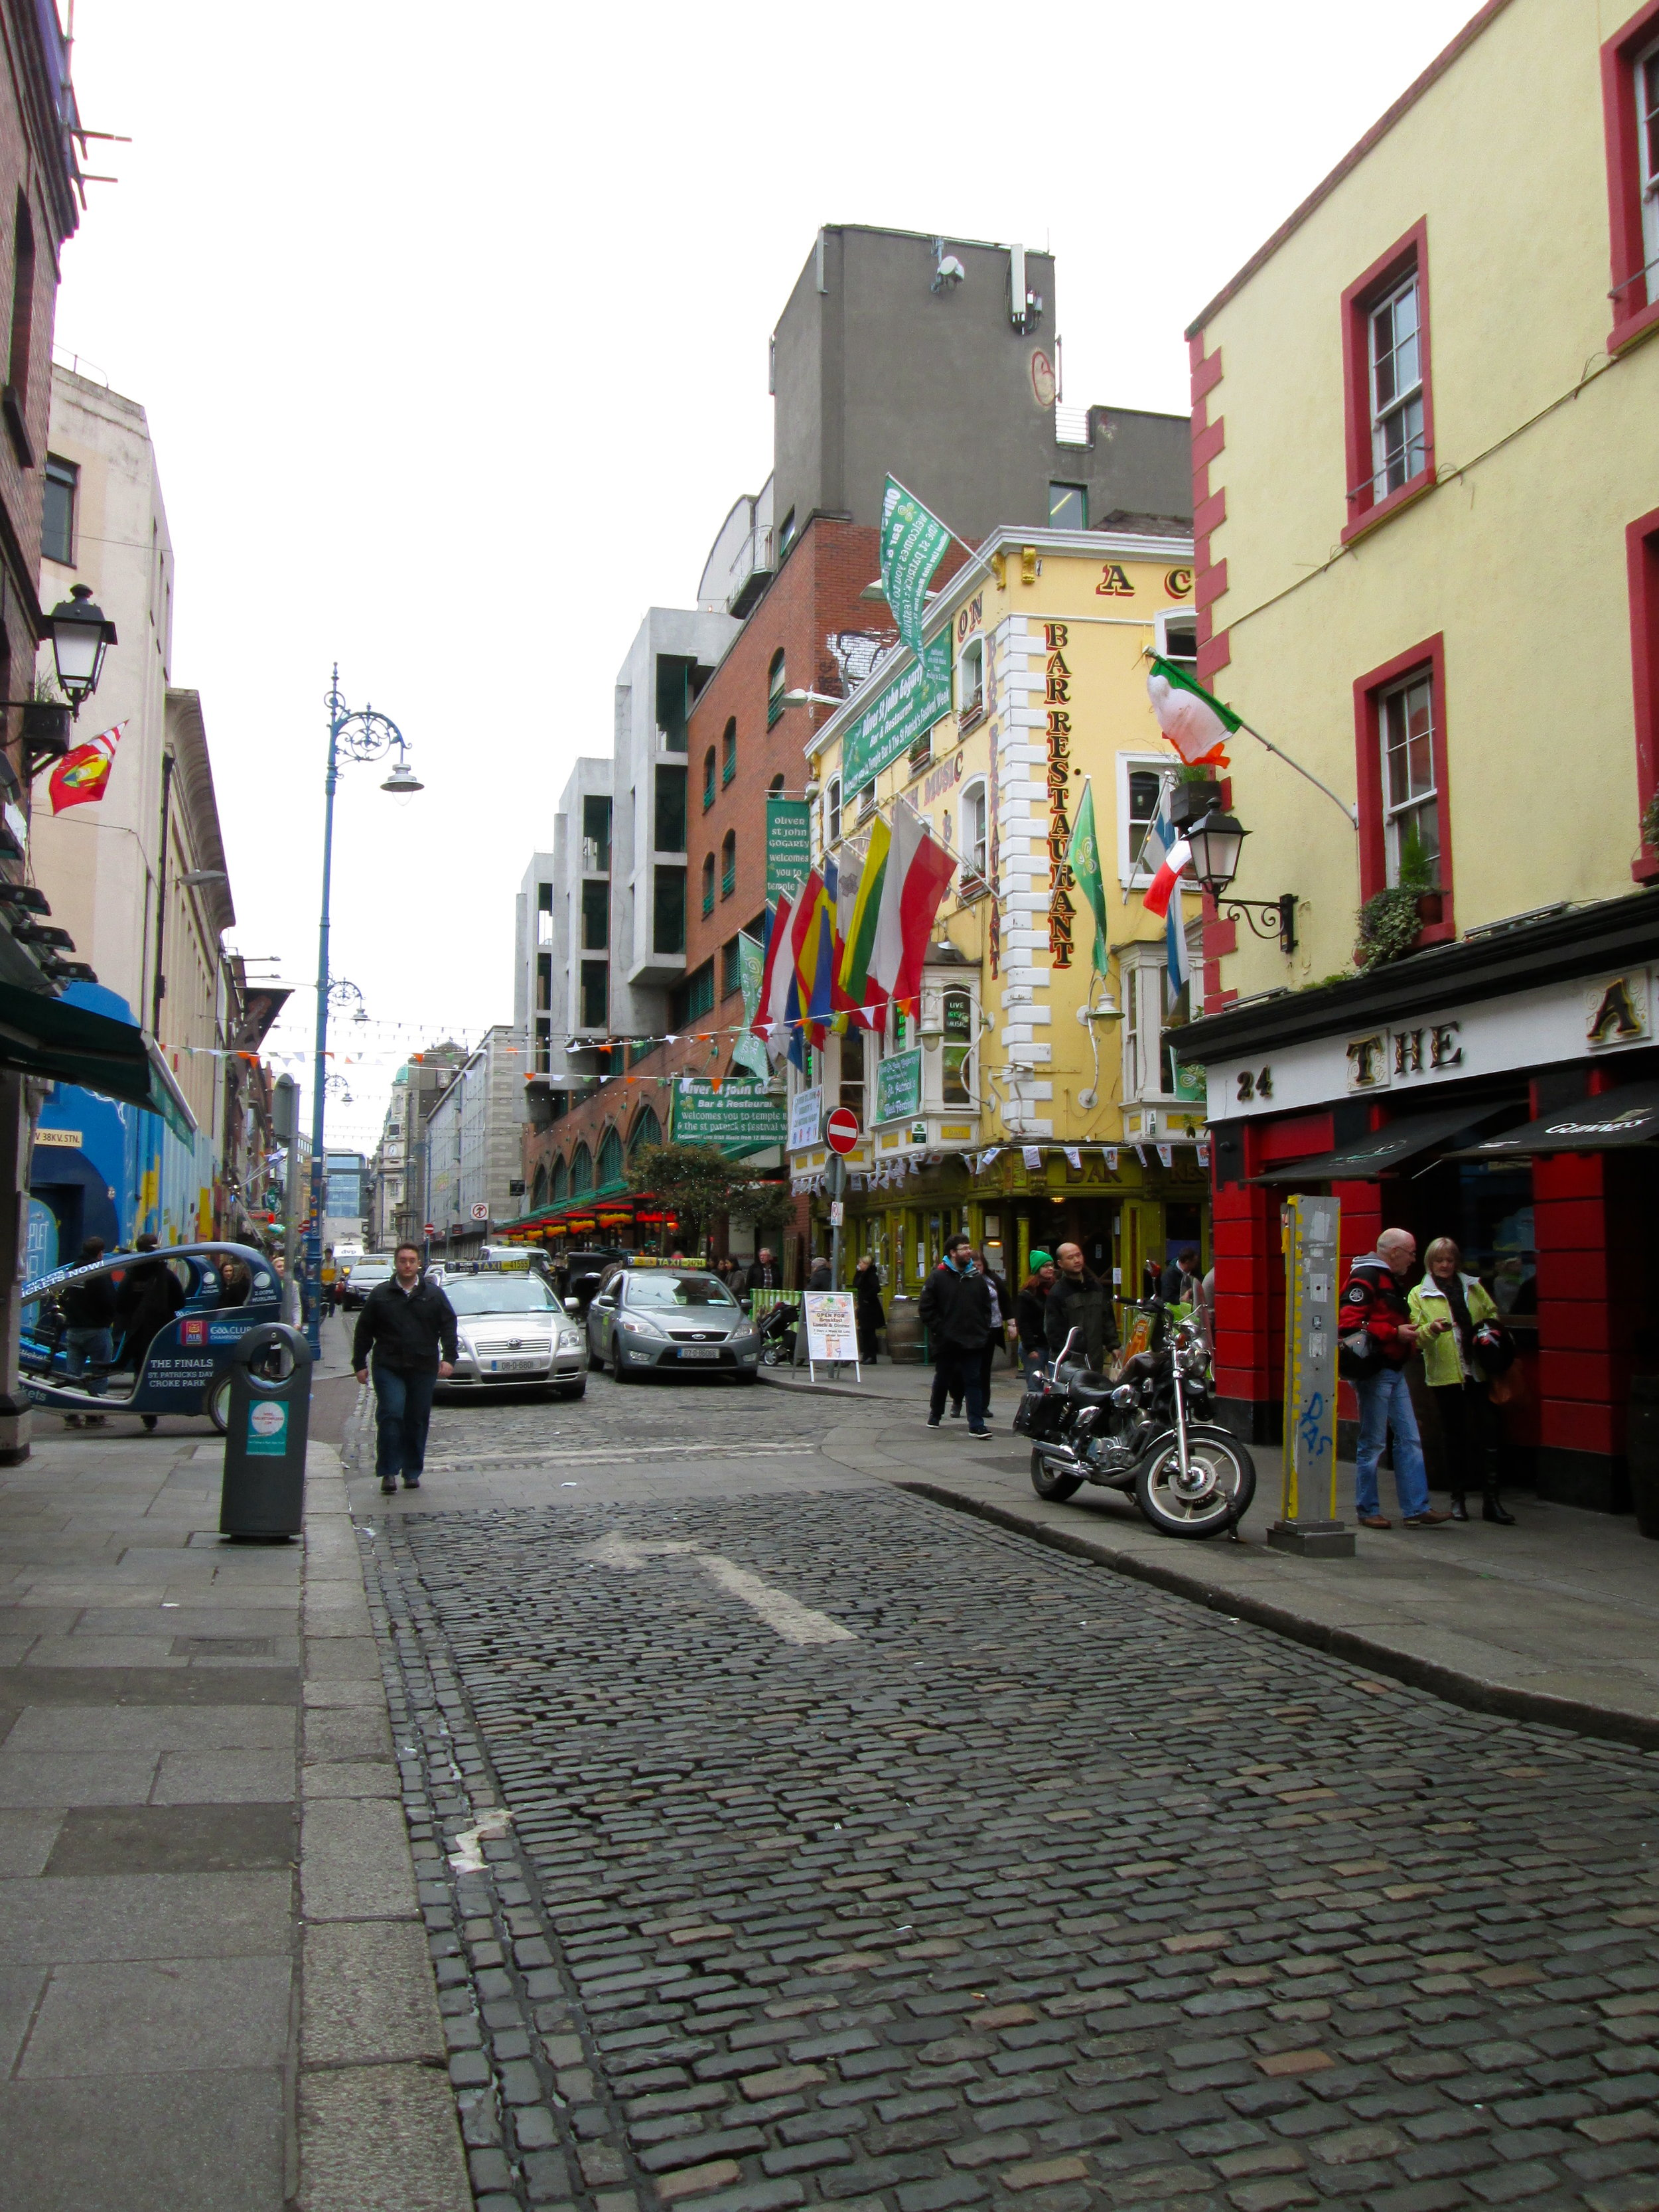 Temple Bar during the day time.